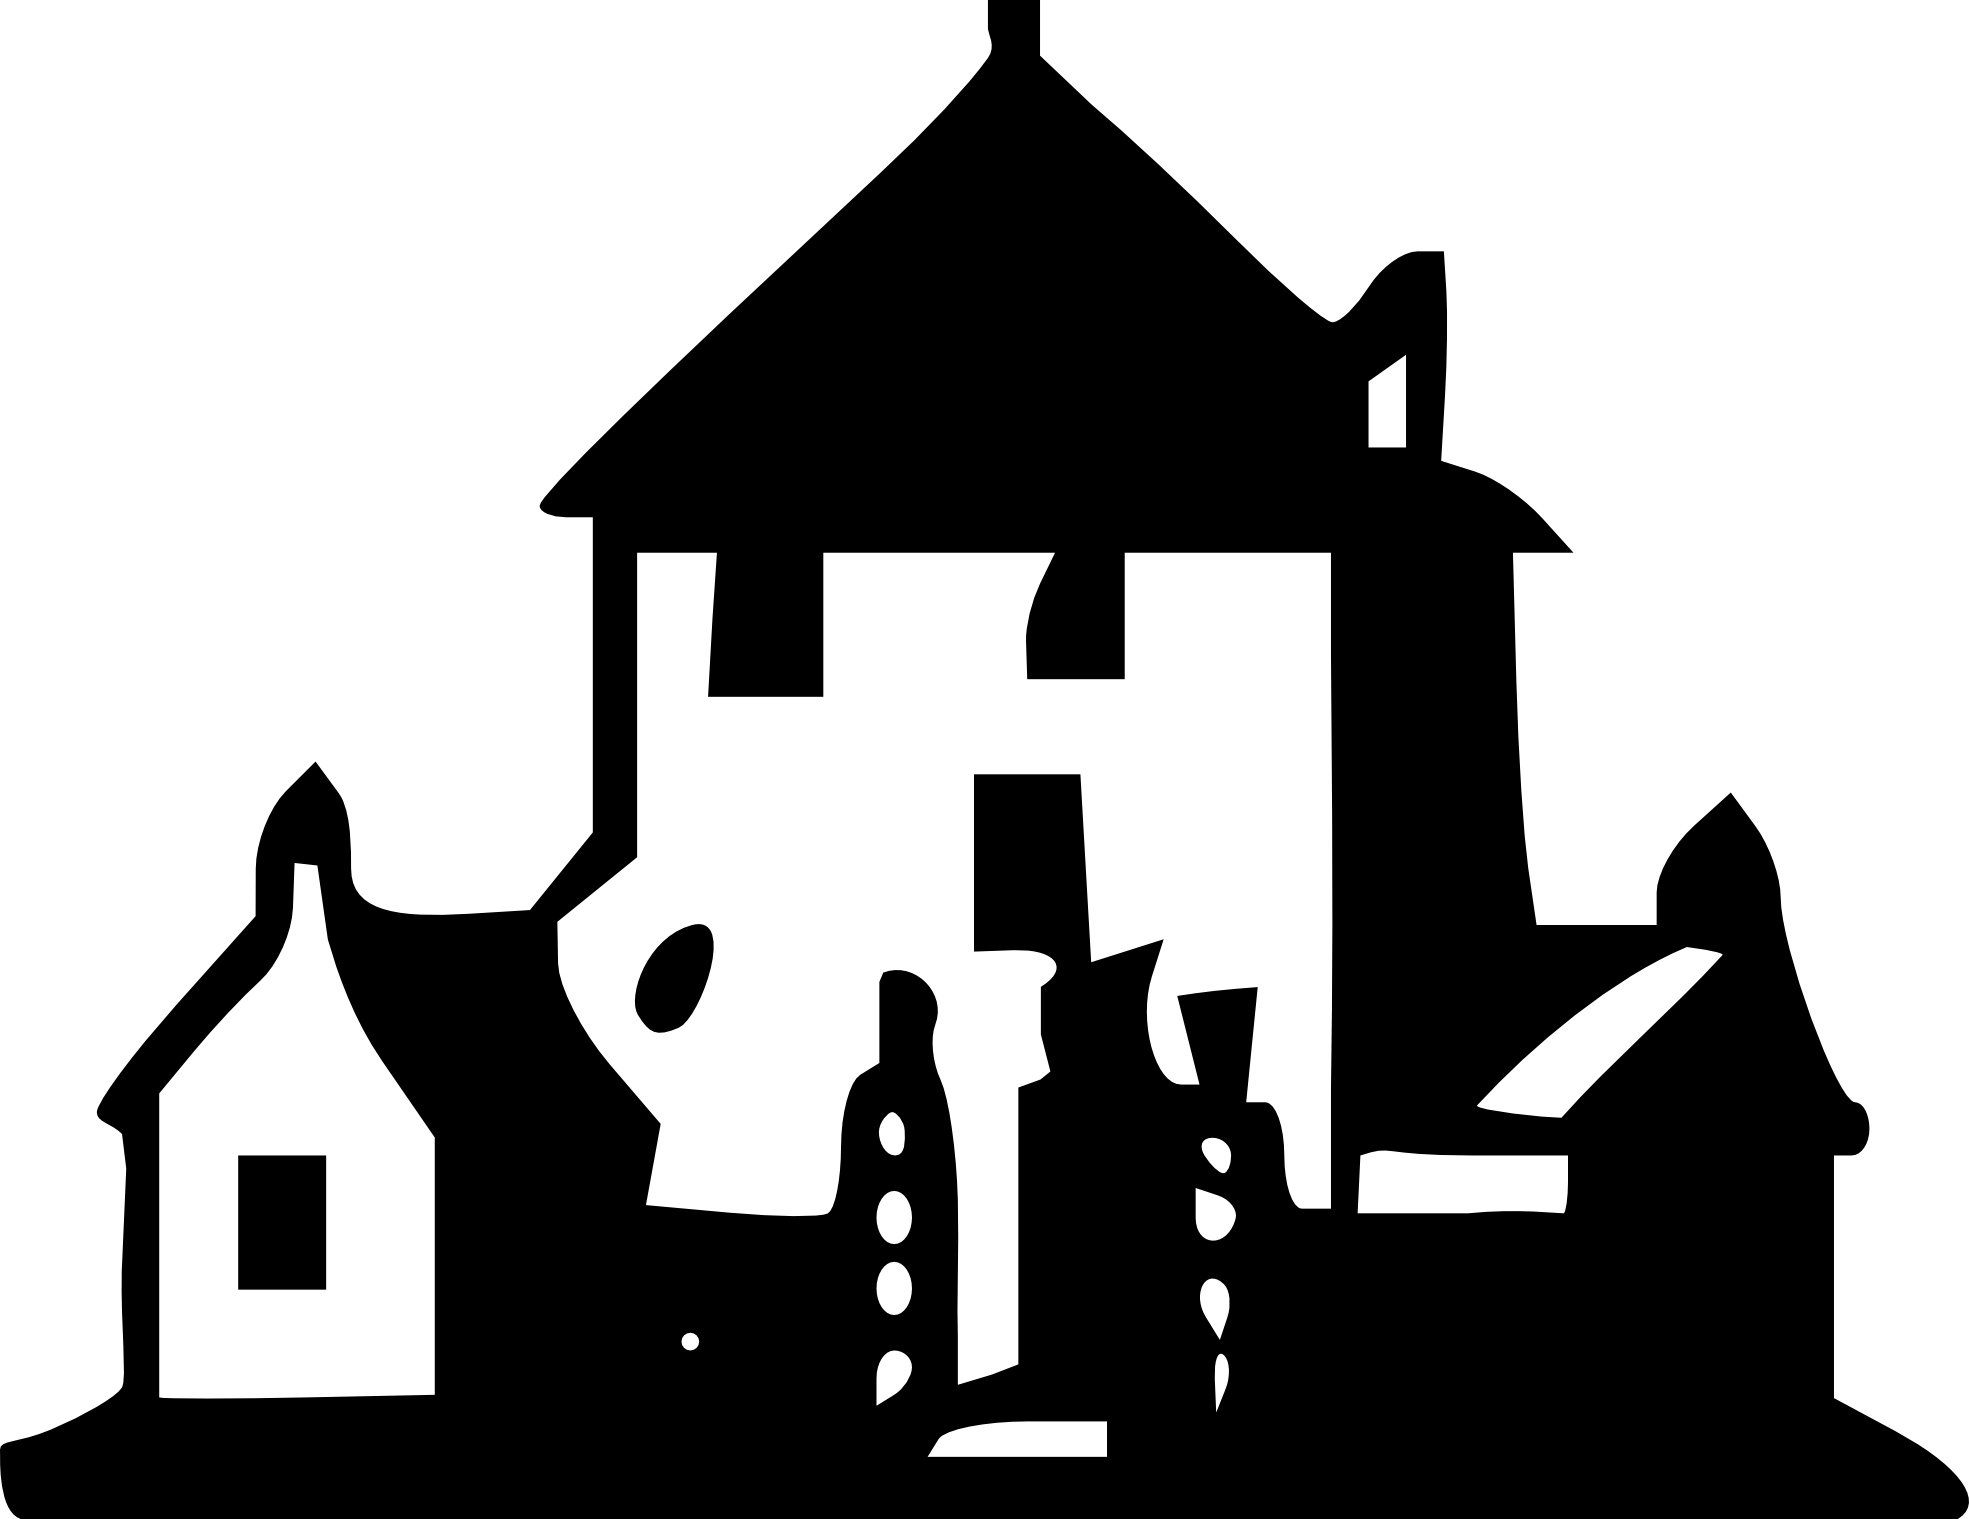 Black and white clipart of house clipart library stock Haunted house clipart black and white | ClipartMonk - Free Clip Art ... clipart library stock